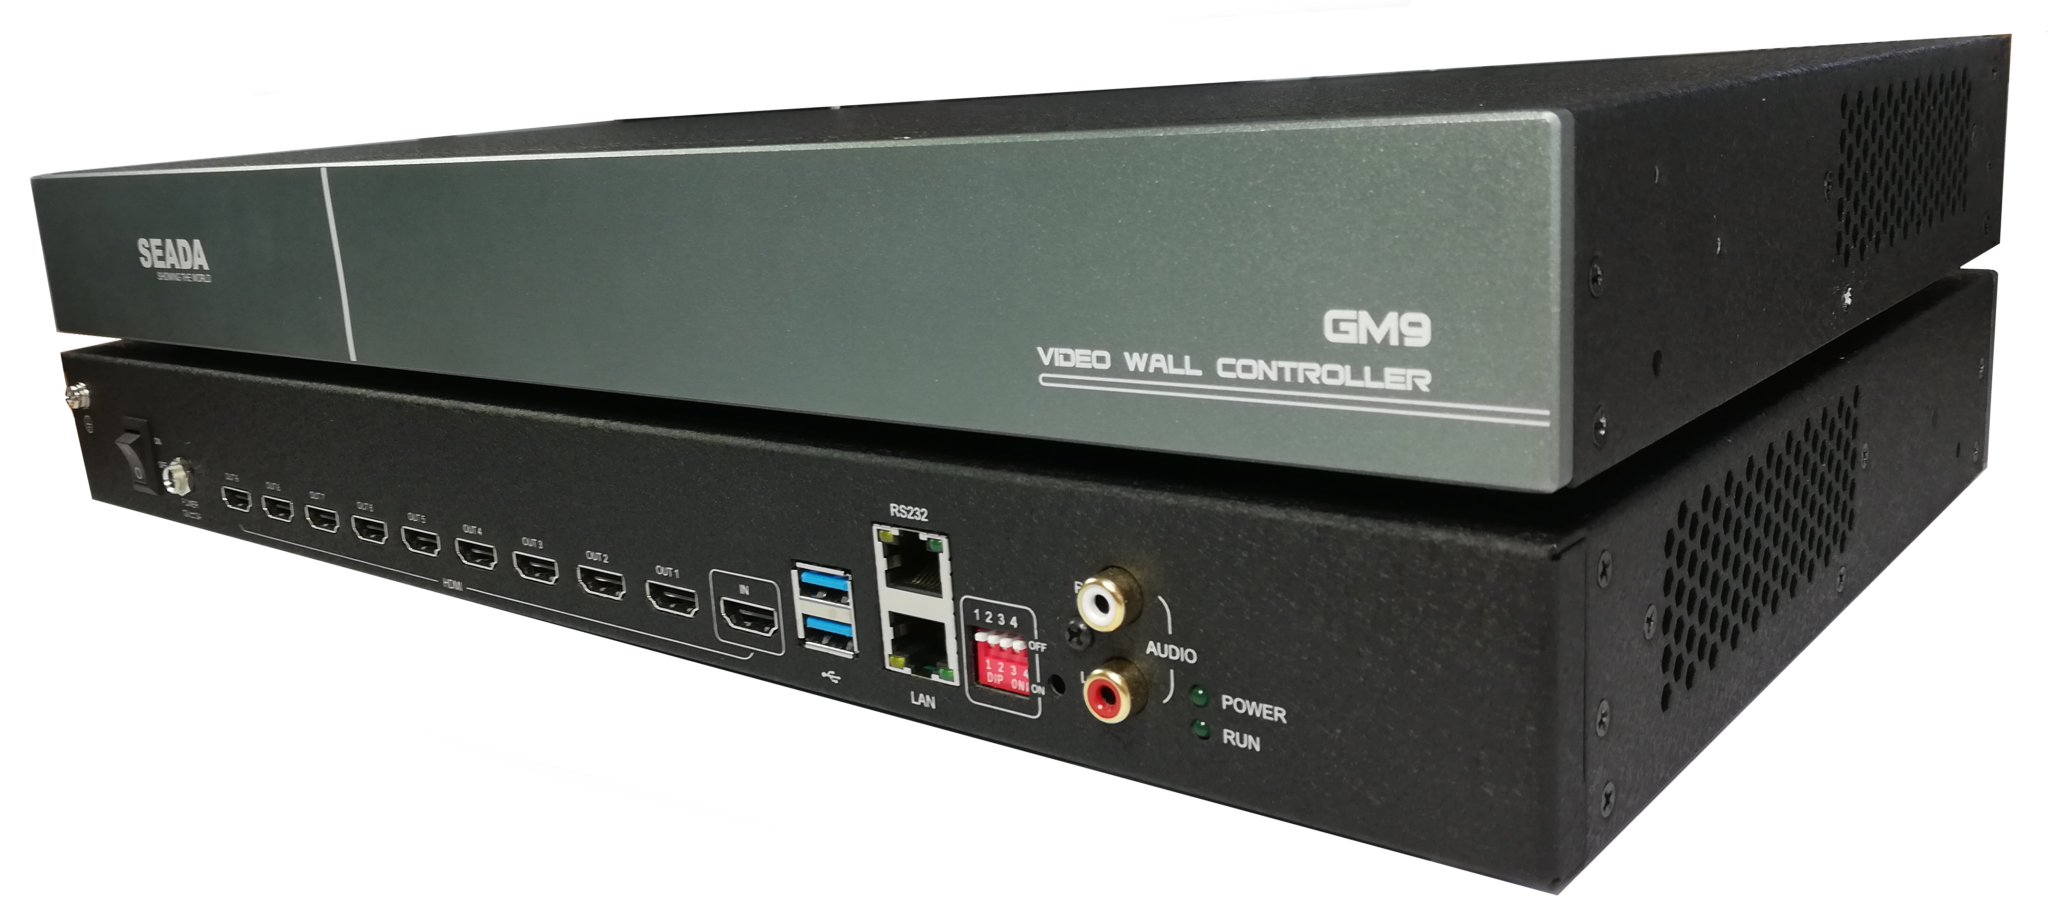 GM9 CREATIVE VIDEO WALL CONTROLLER